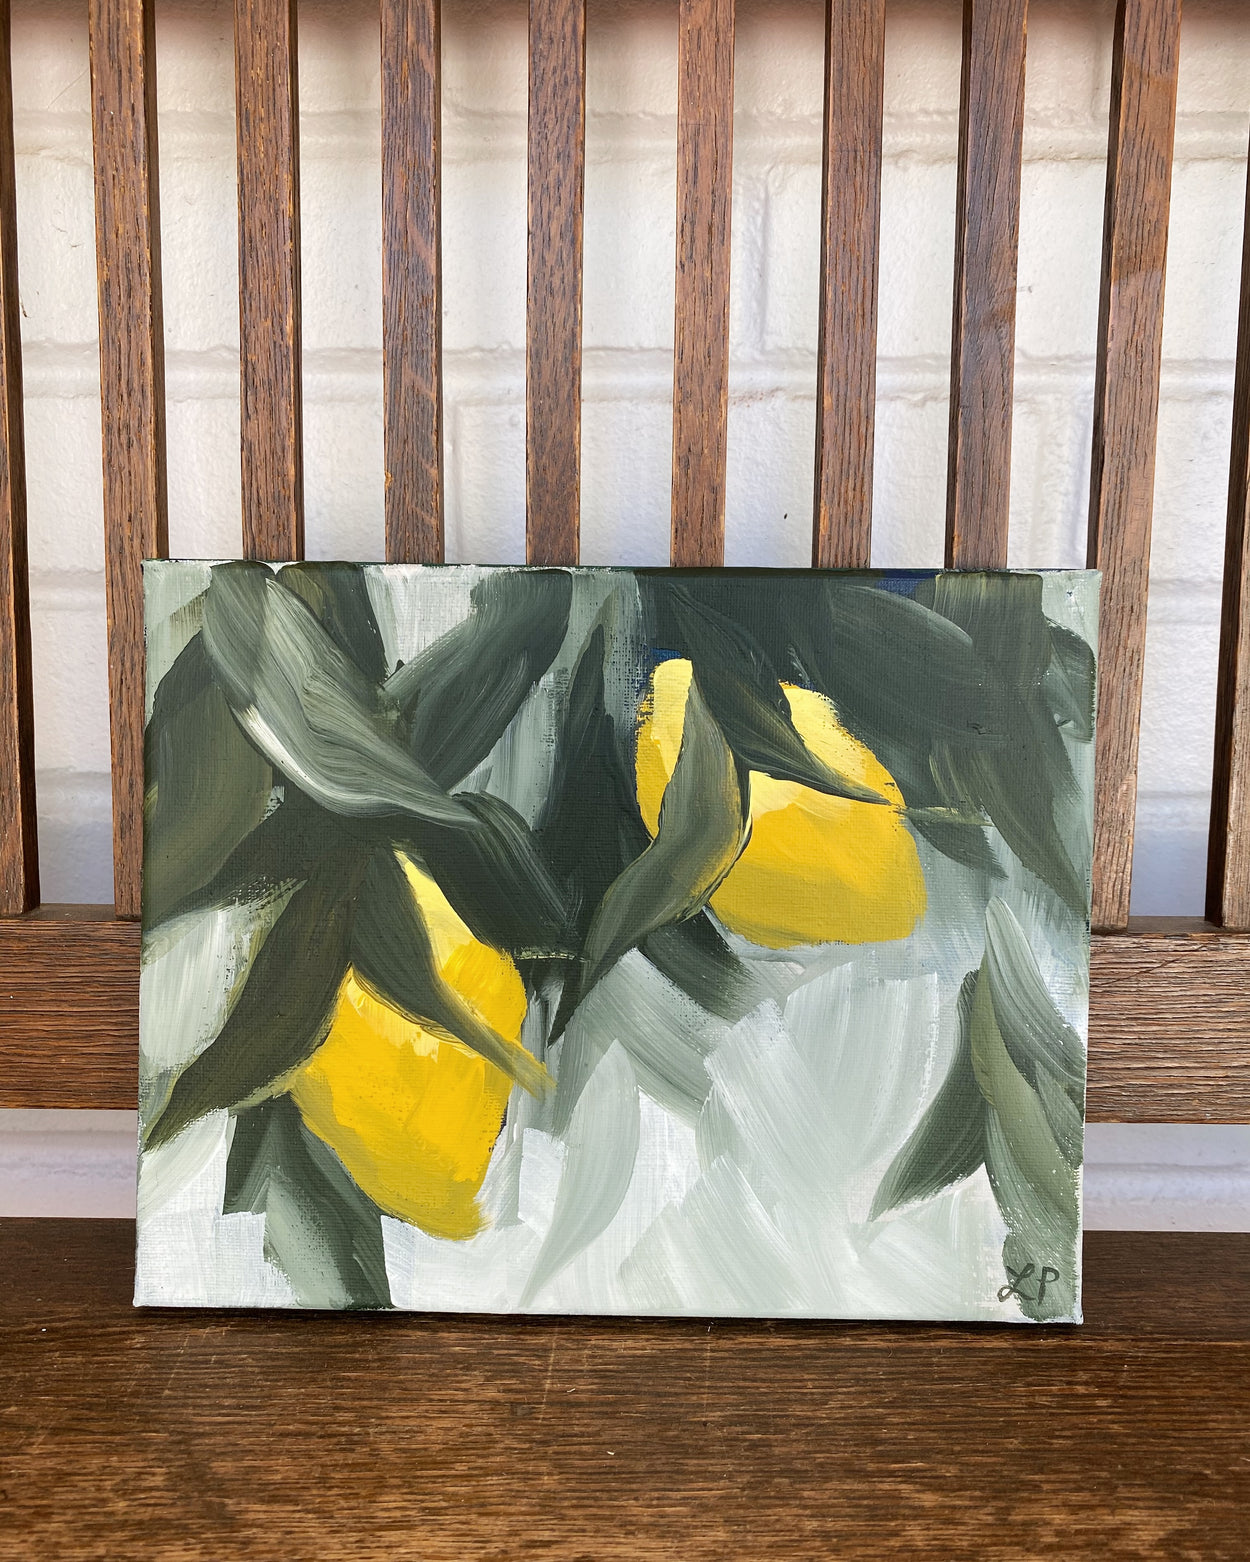 Lemon and Leaves II